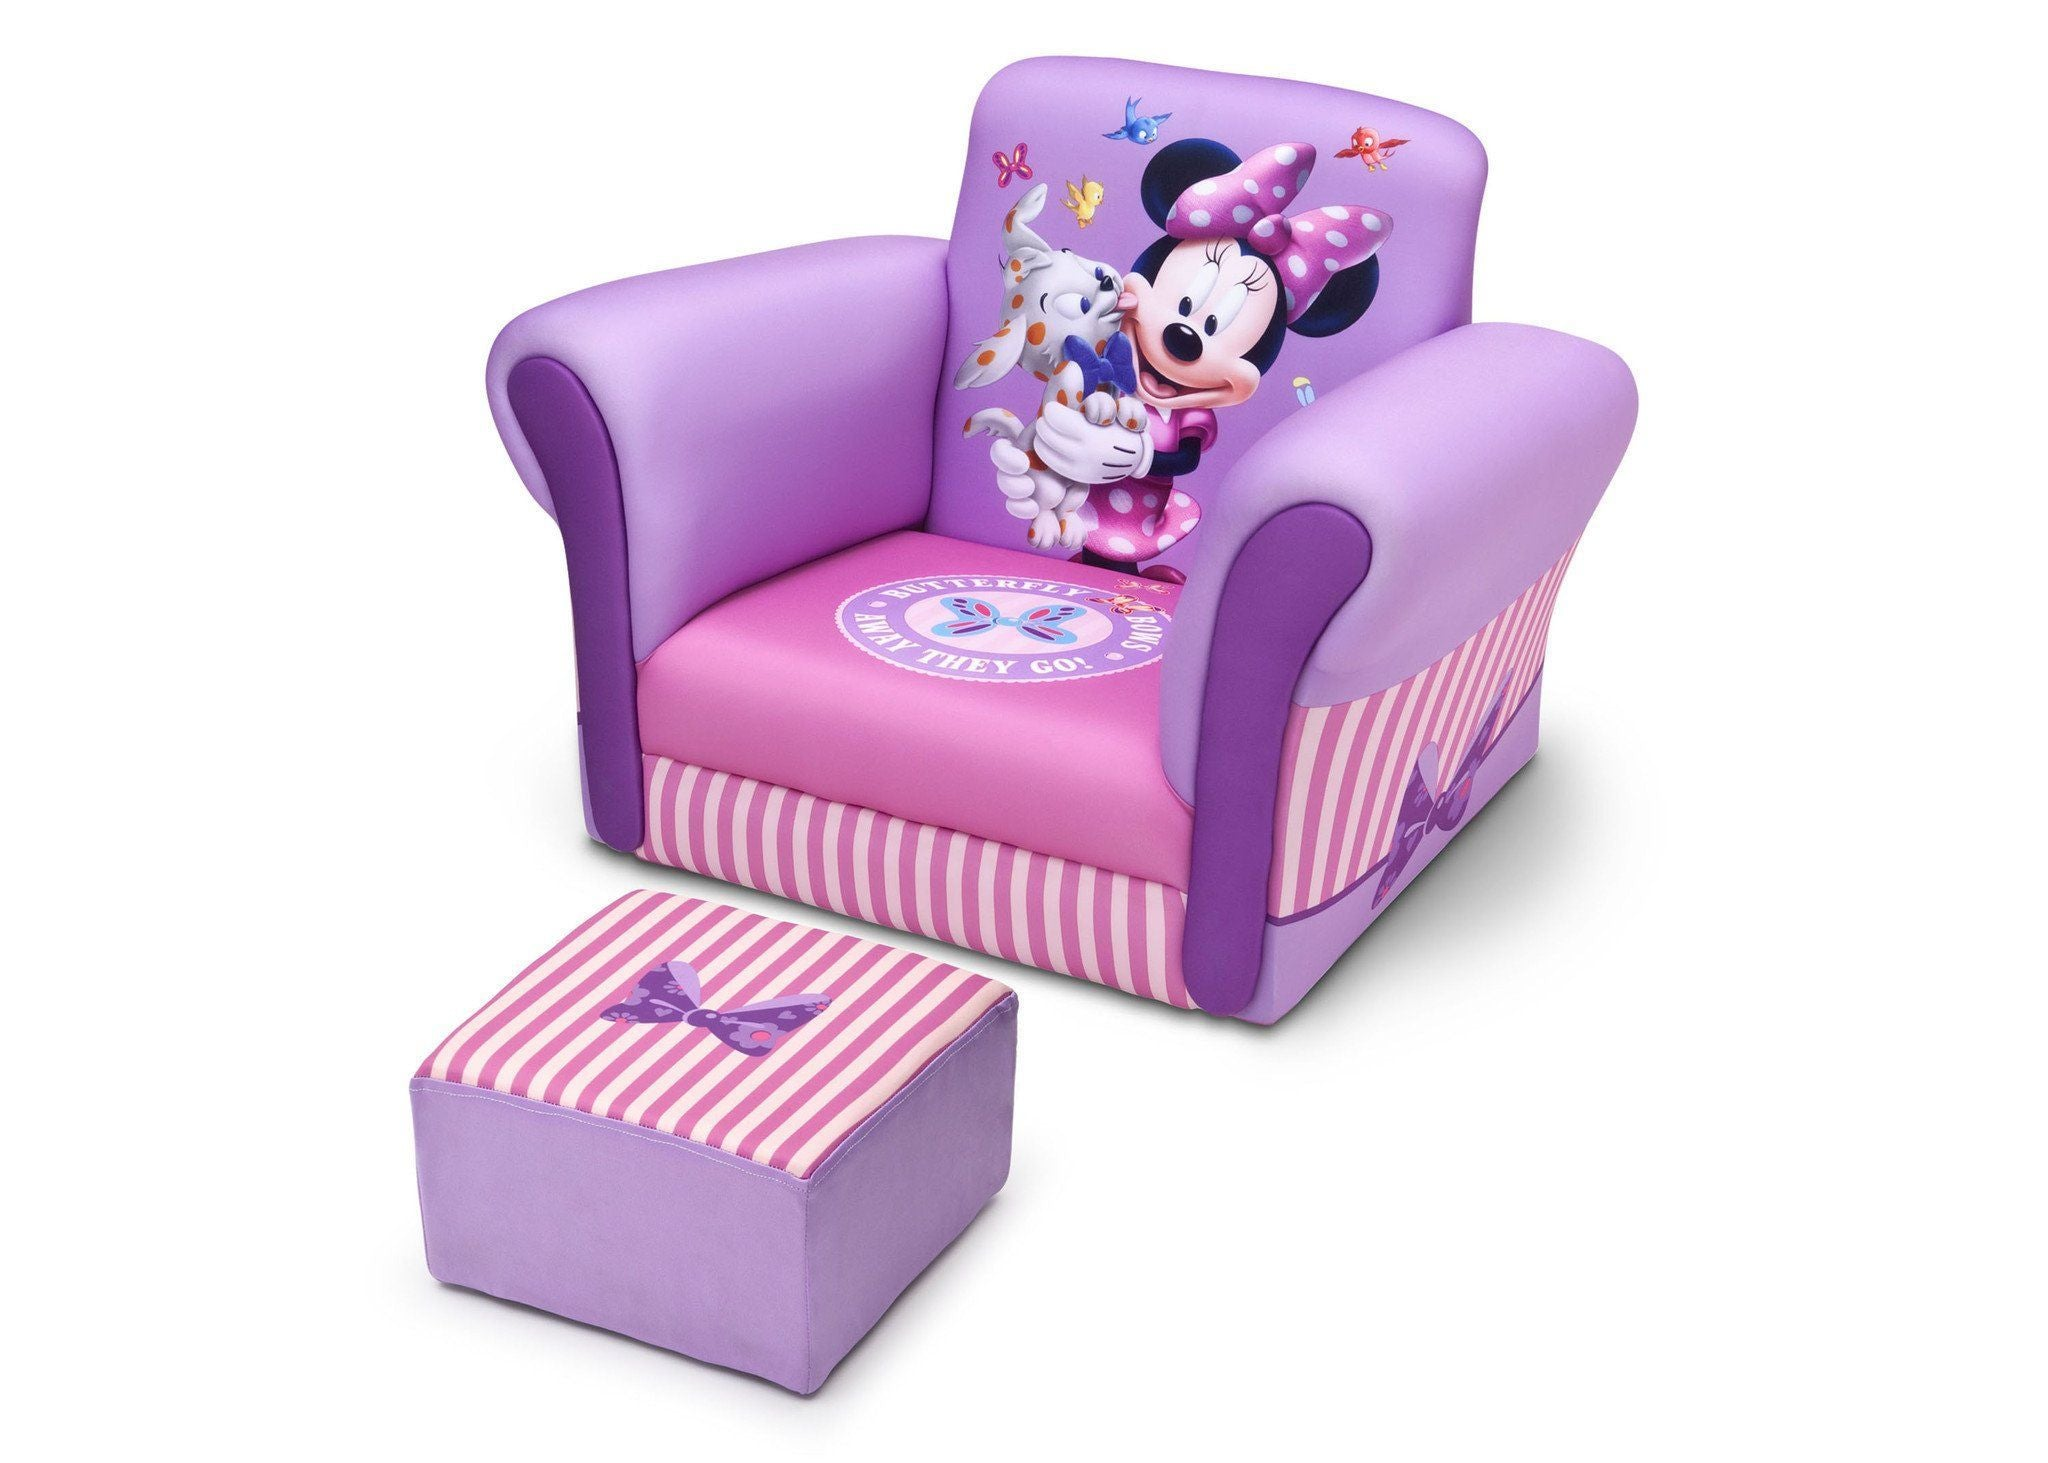 Charmant ... Delta Children Minnie Mouse Upholstered Chair With Ottoman, Left View  A2a